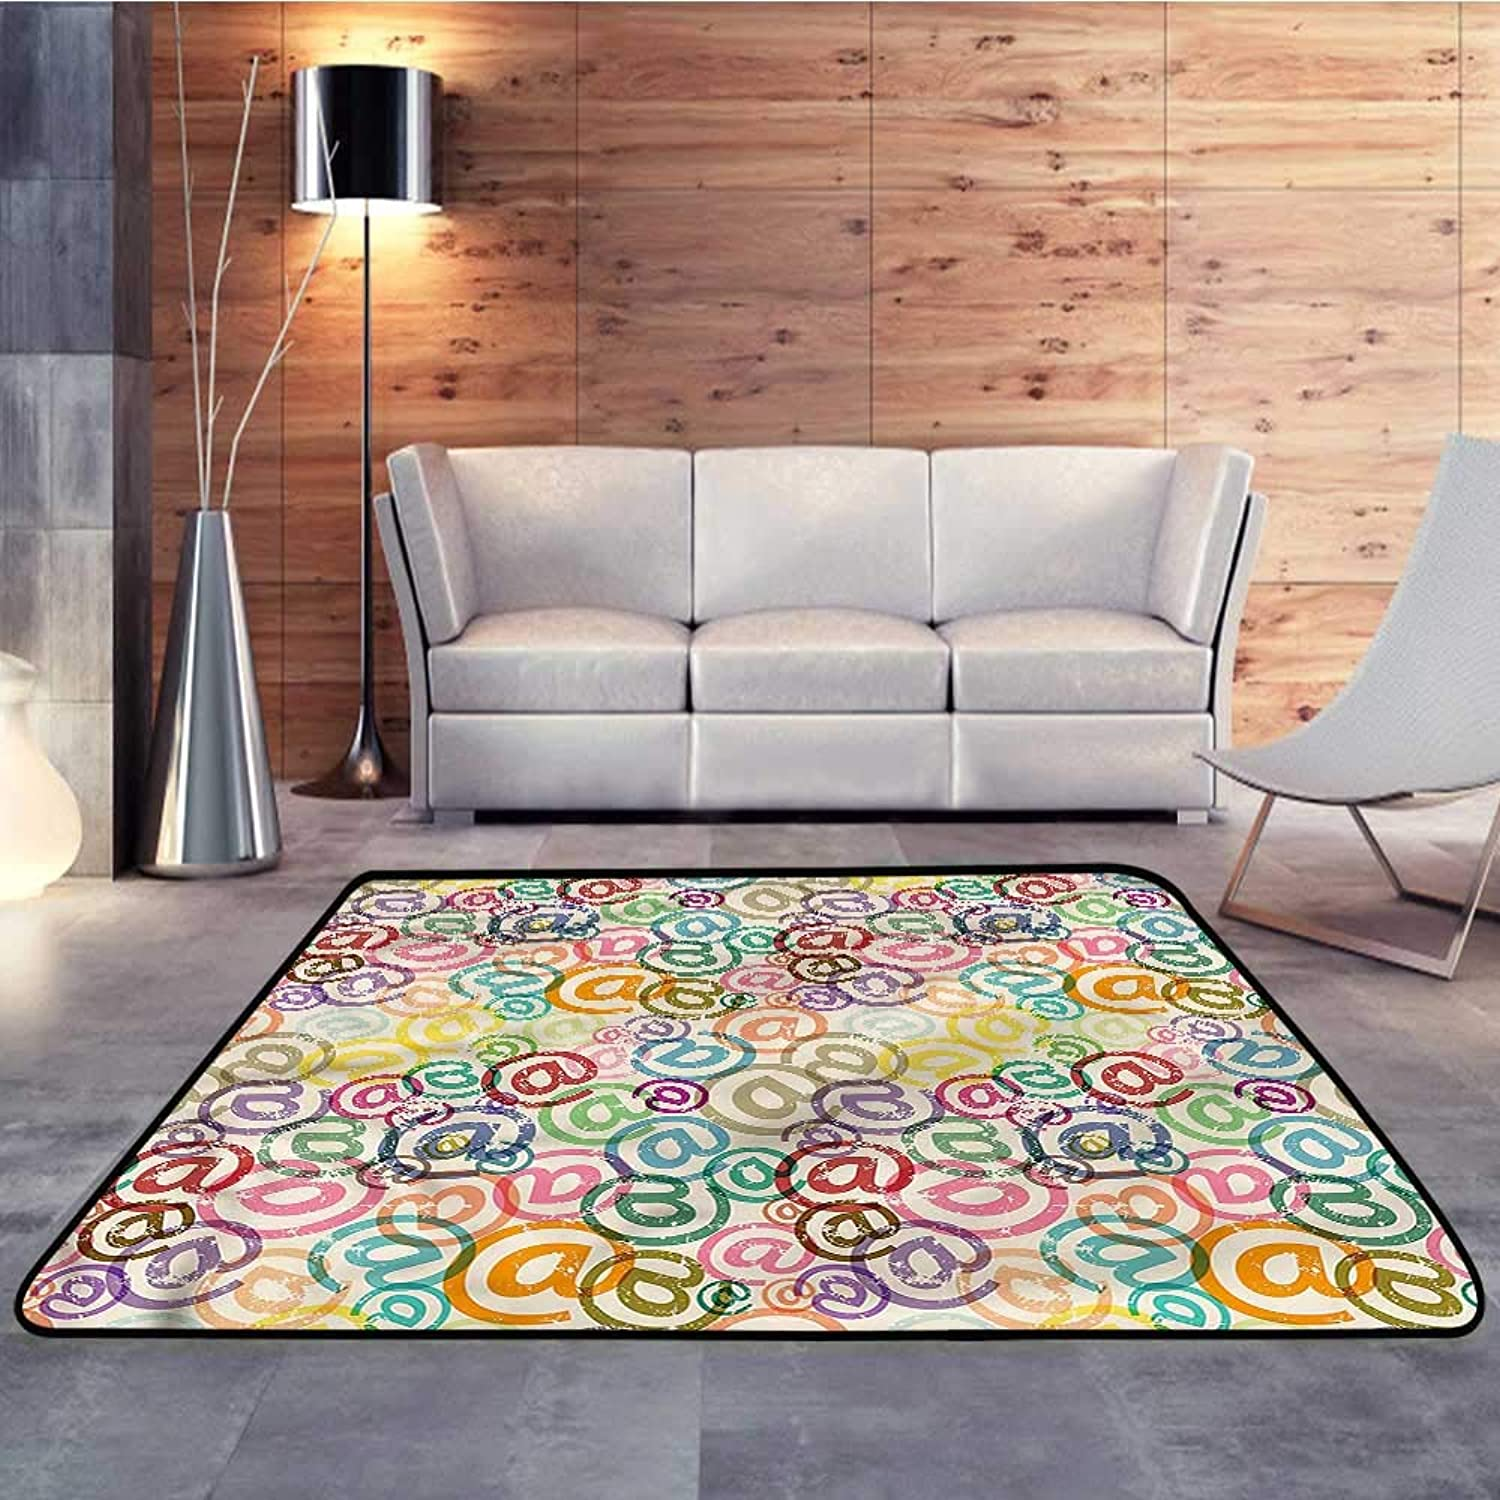 Carpet mat,colorful,Old Pattern Email SignsW 47  x L59 Floor Mat Entrance Doormat